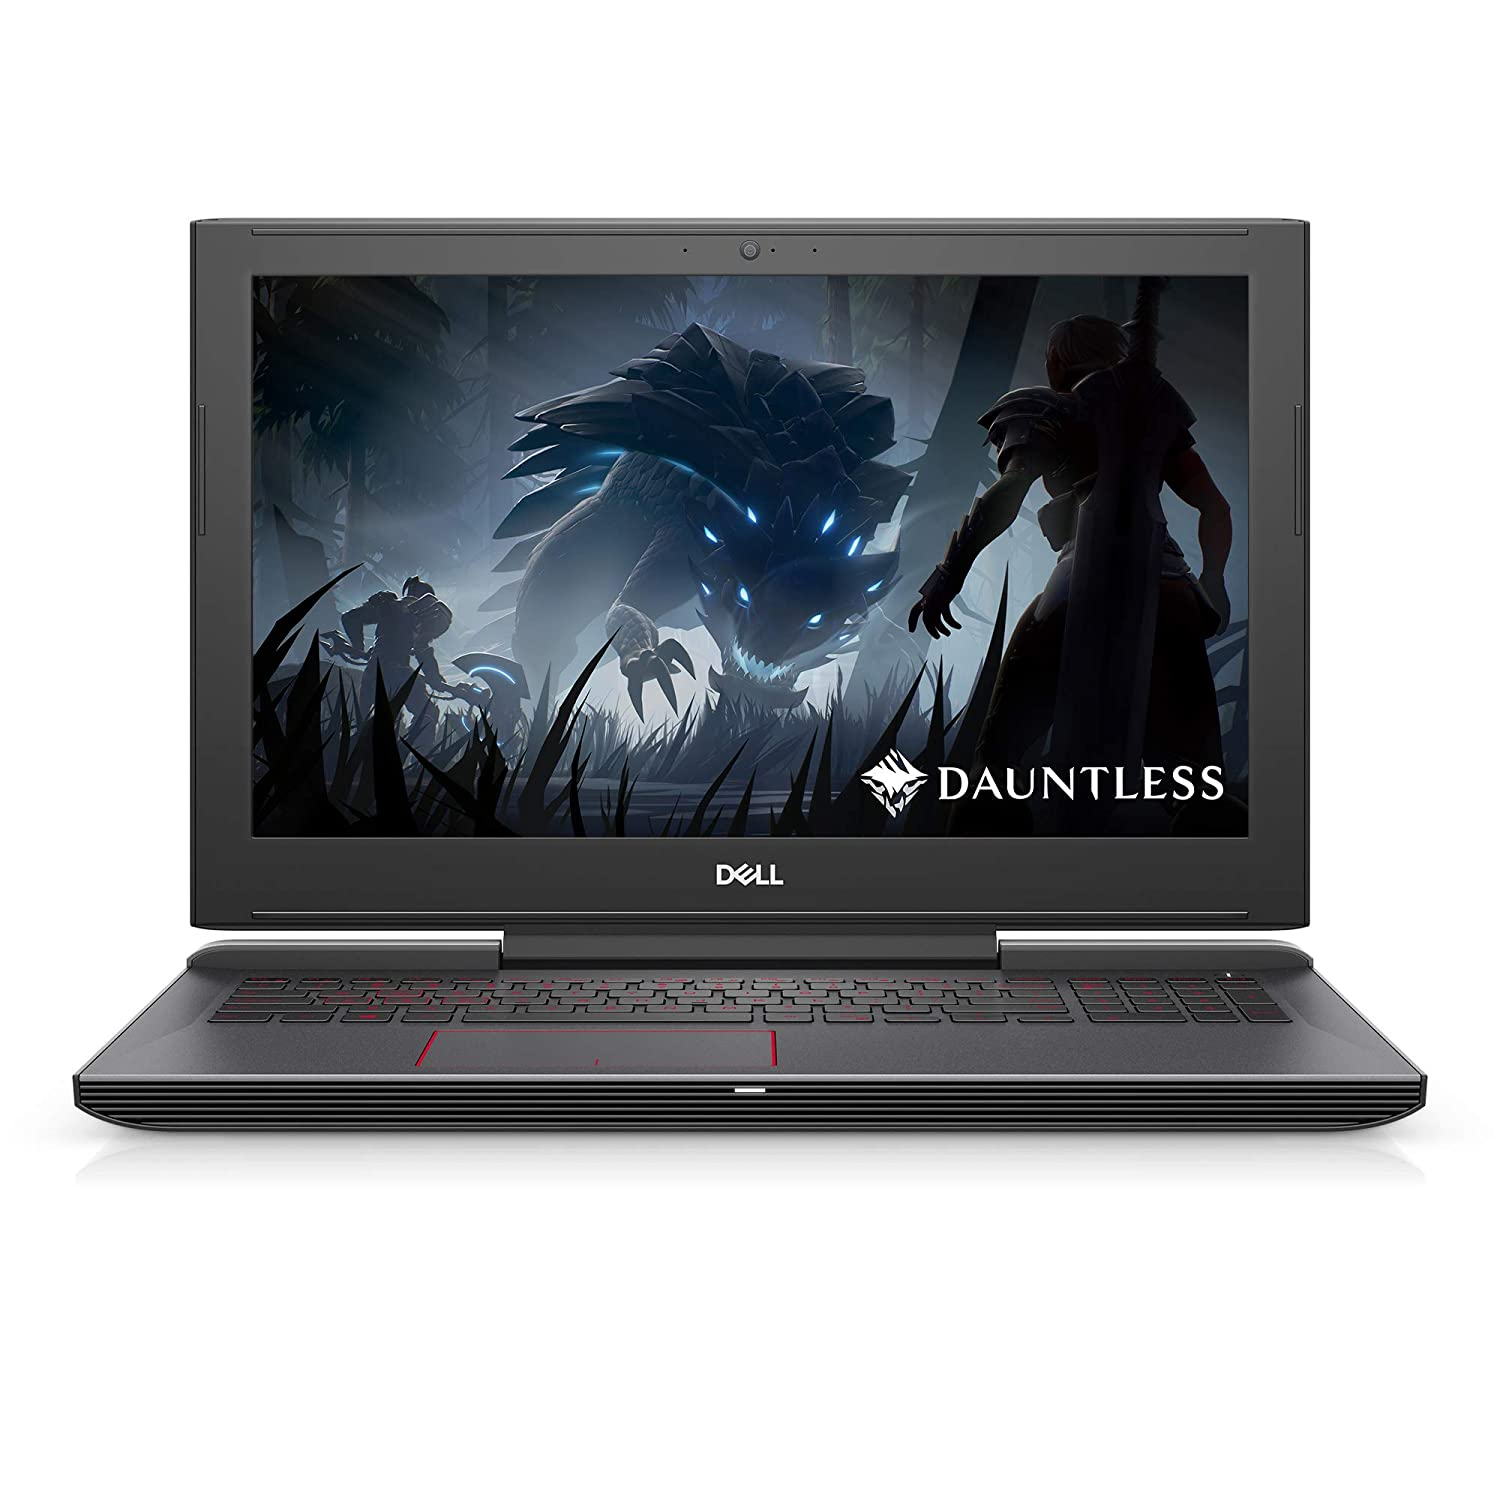 最新の激安 Dell G5 15 Premium 1050 G5 Gaming and GTX Business Laptop (Intel 8th Gen i7-8750H Quad-Core, 32GB RAM, 1TB HDD + 128GB SSD, 15.6